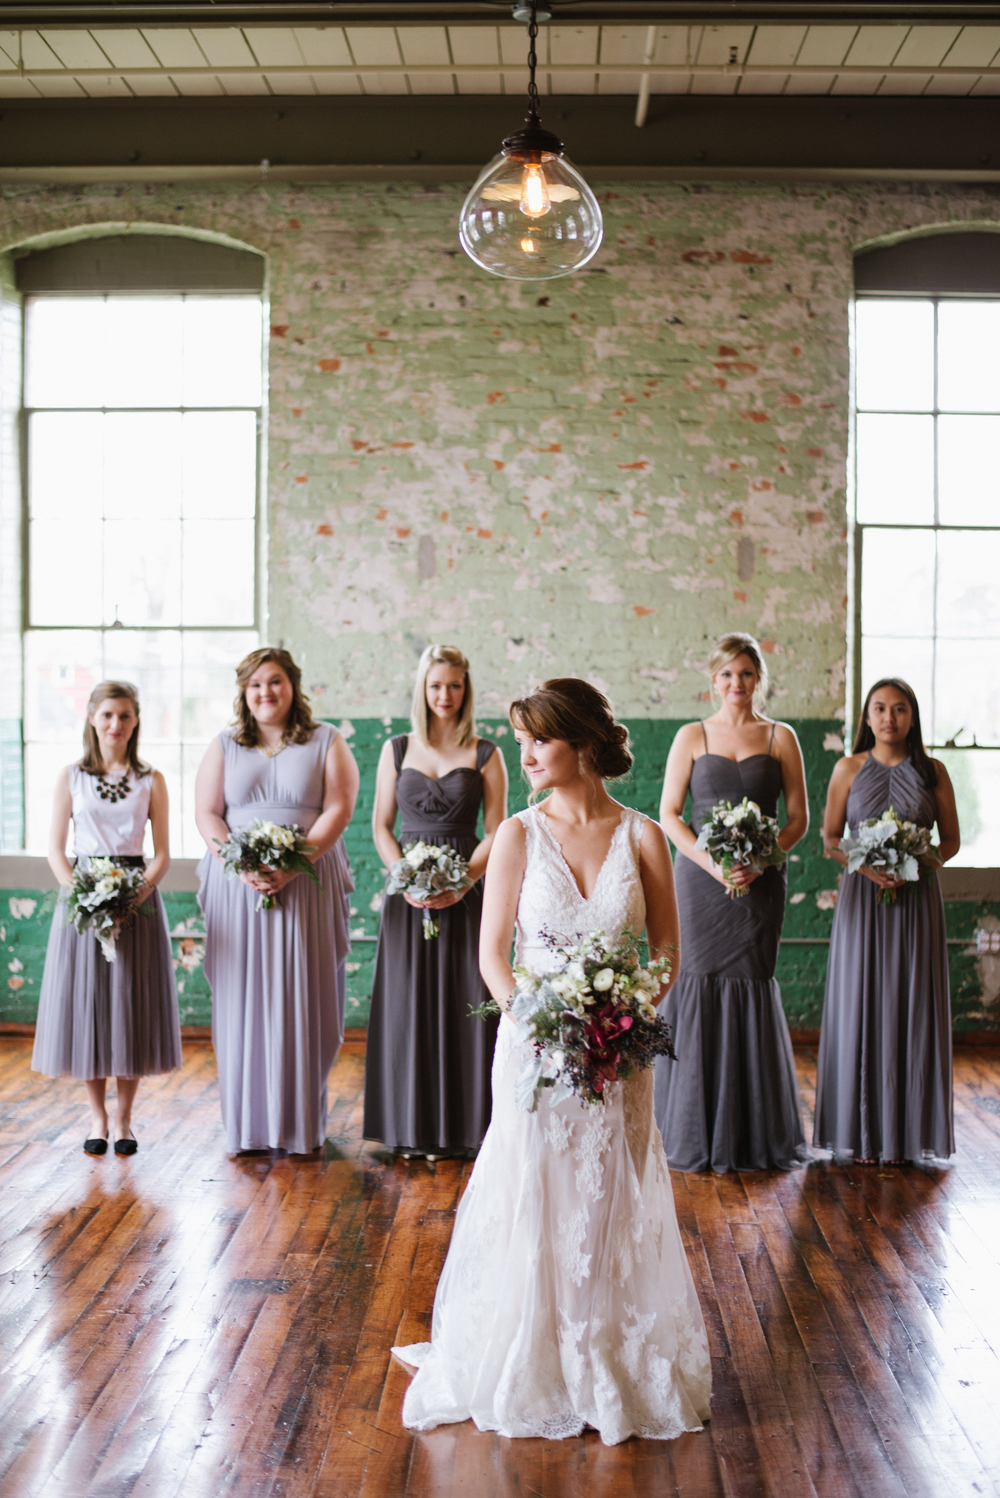 Mix and match bridesmaids dresses at an industrial-chic Georgia wedding.